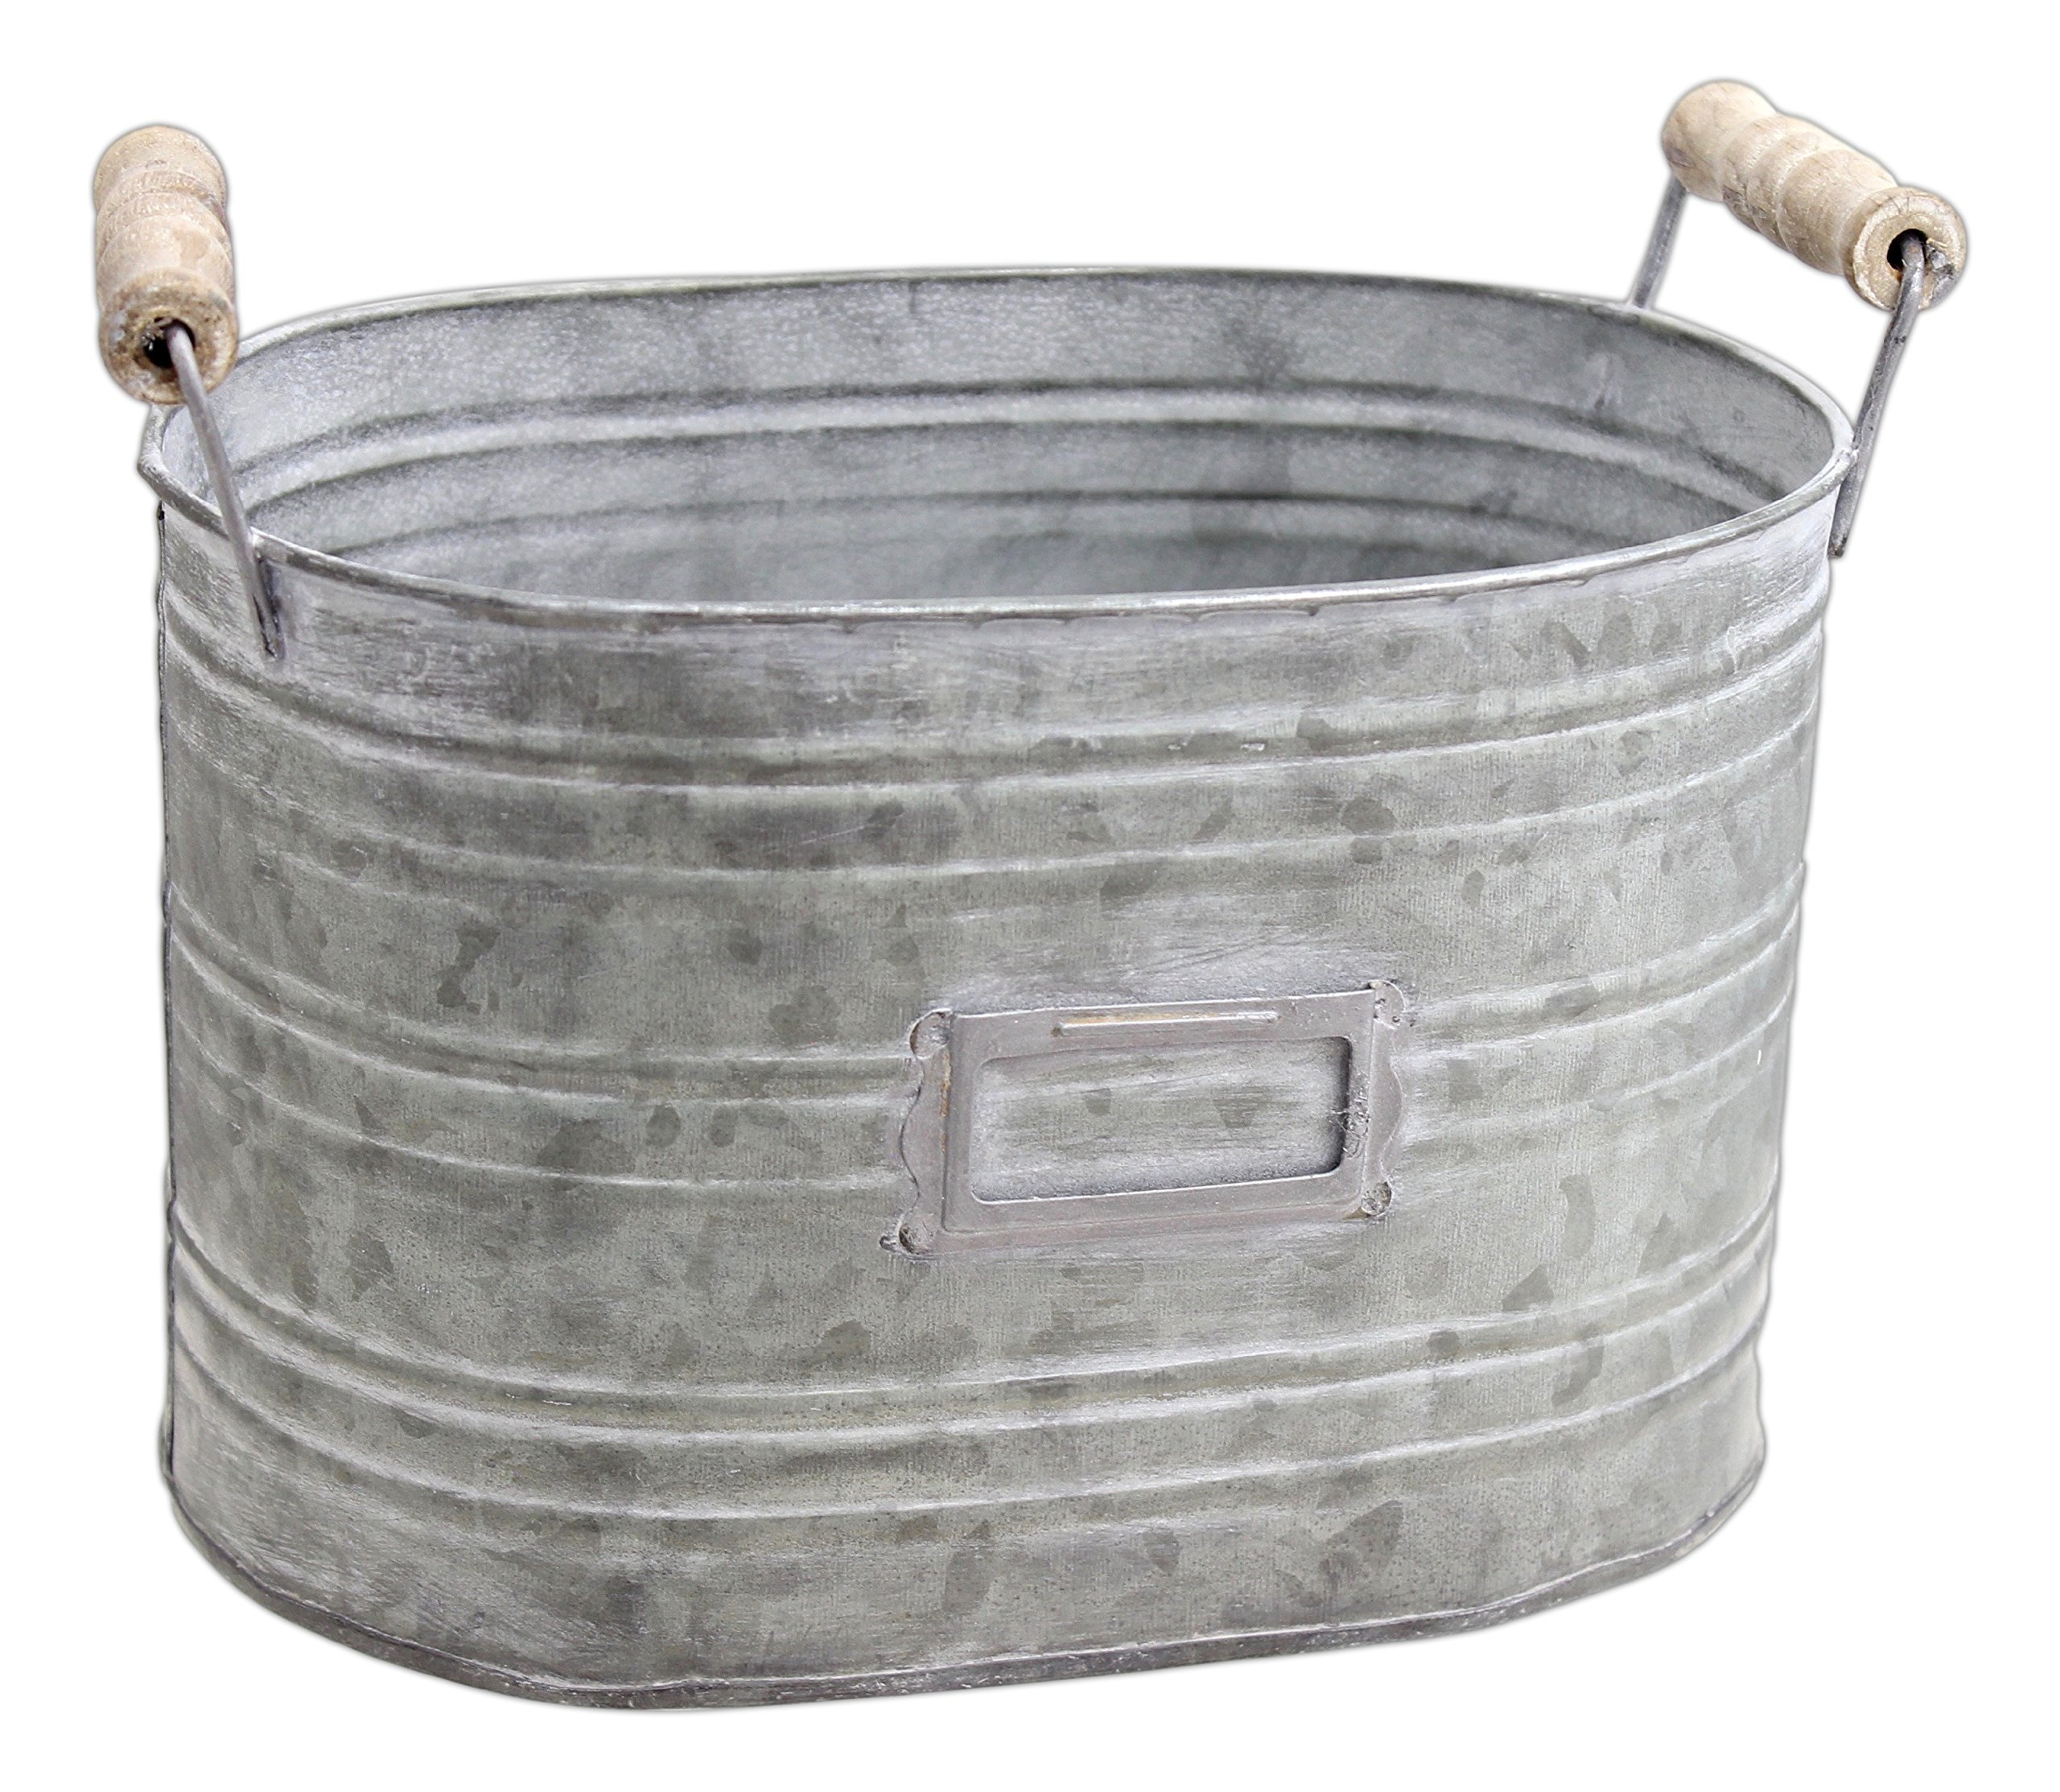 Park Hill 5.5'' x 8.5'' Rustic Oblong Metal Bucket Planter by Park Hill